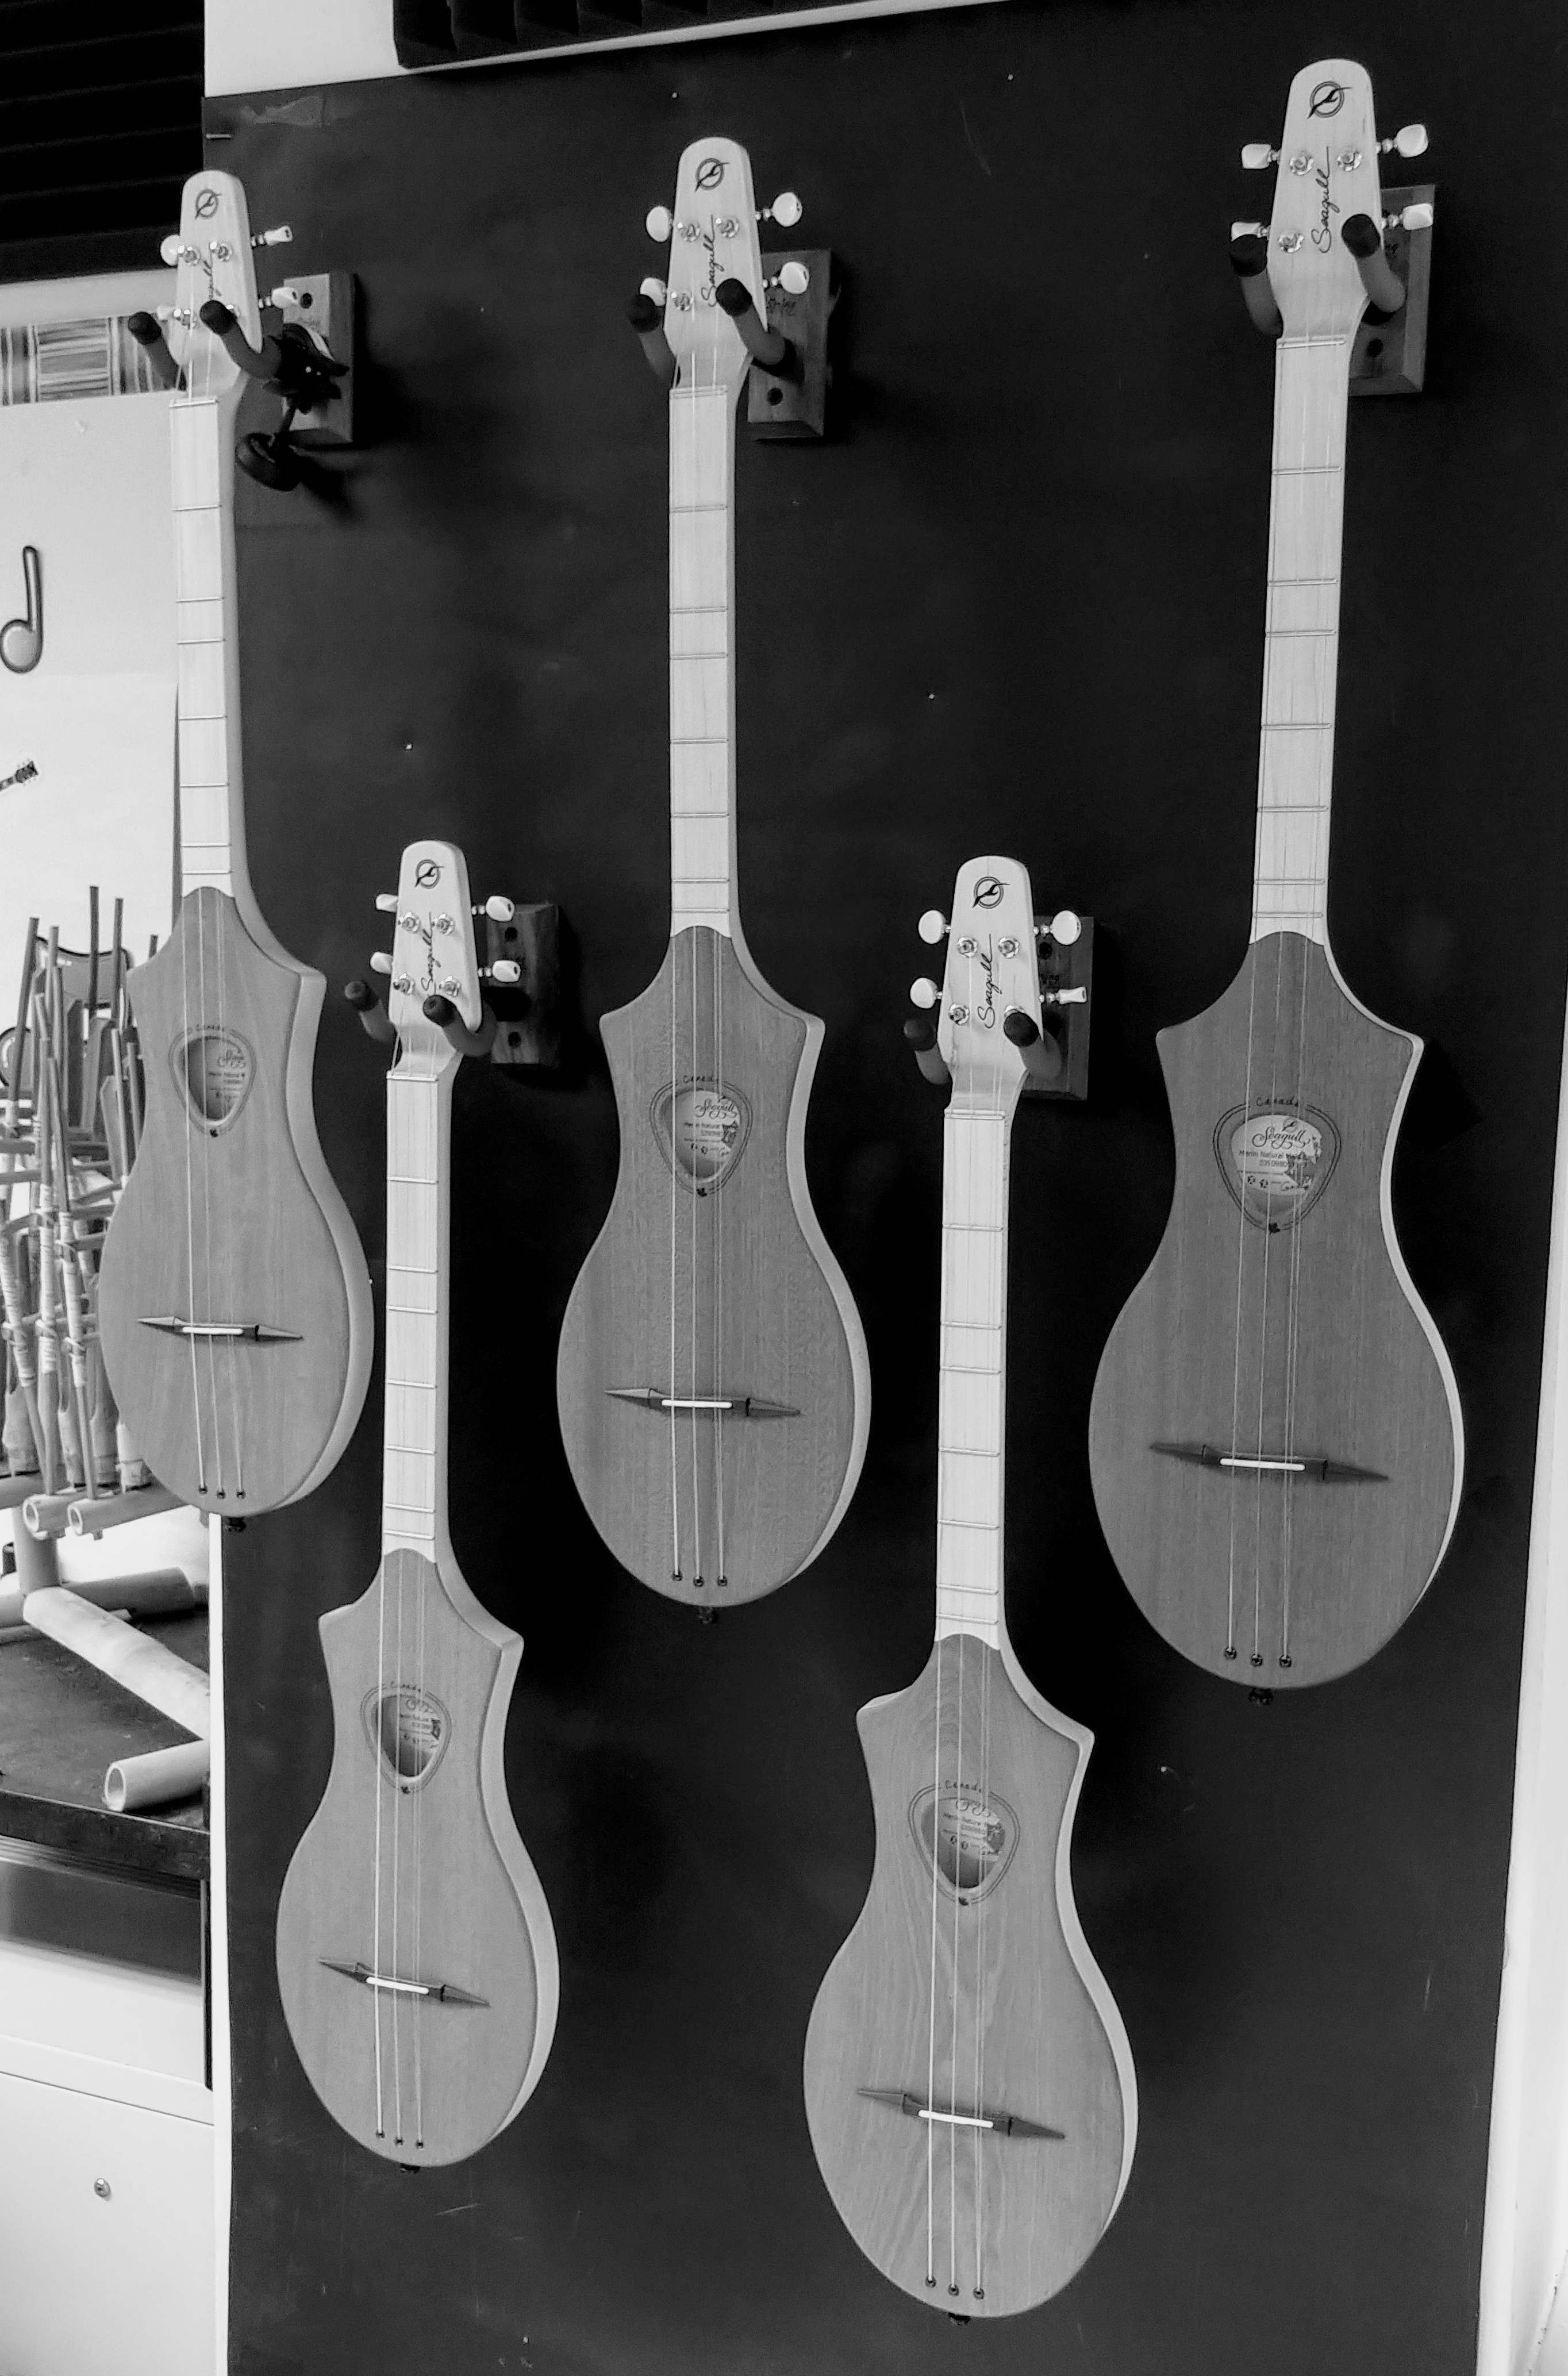 Seagull Merlins (Diatonic string instruments that are similar to dulcimers)